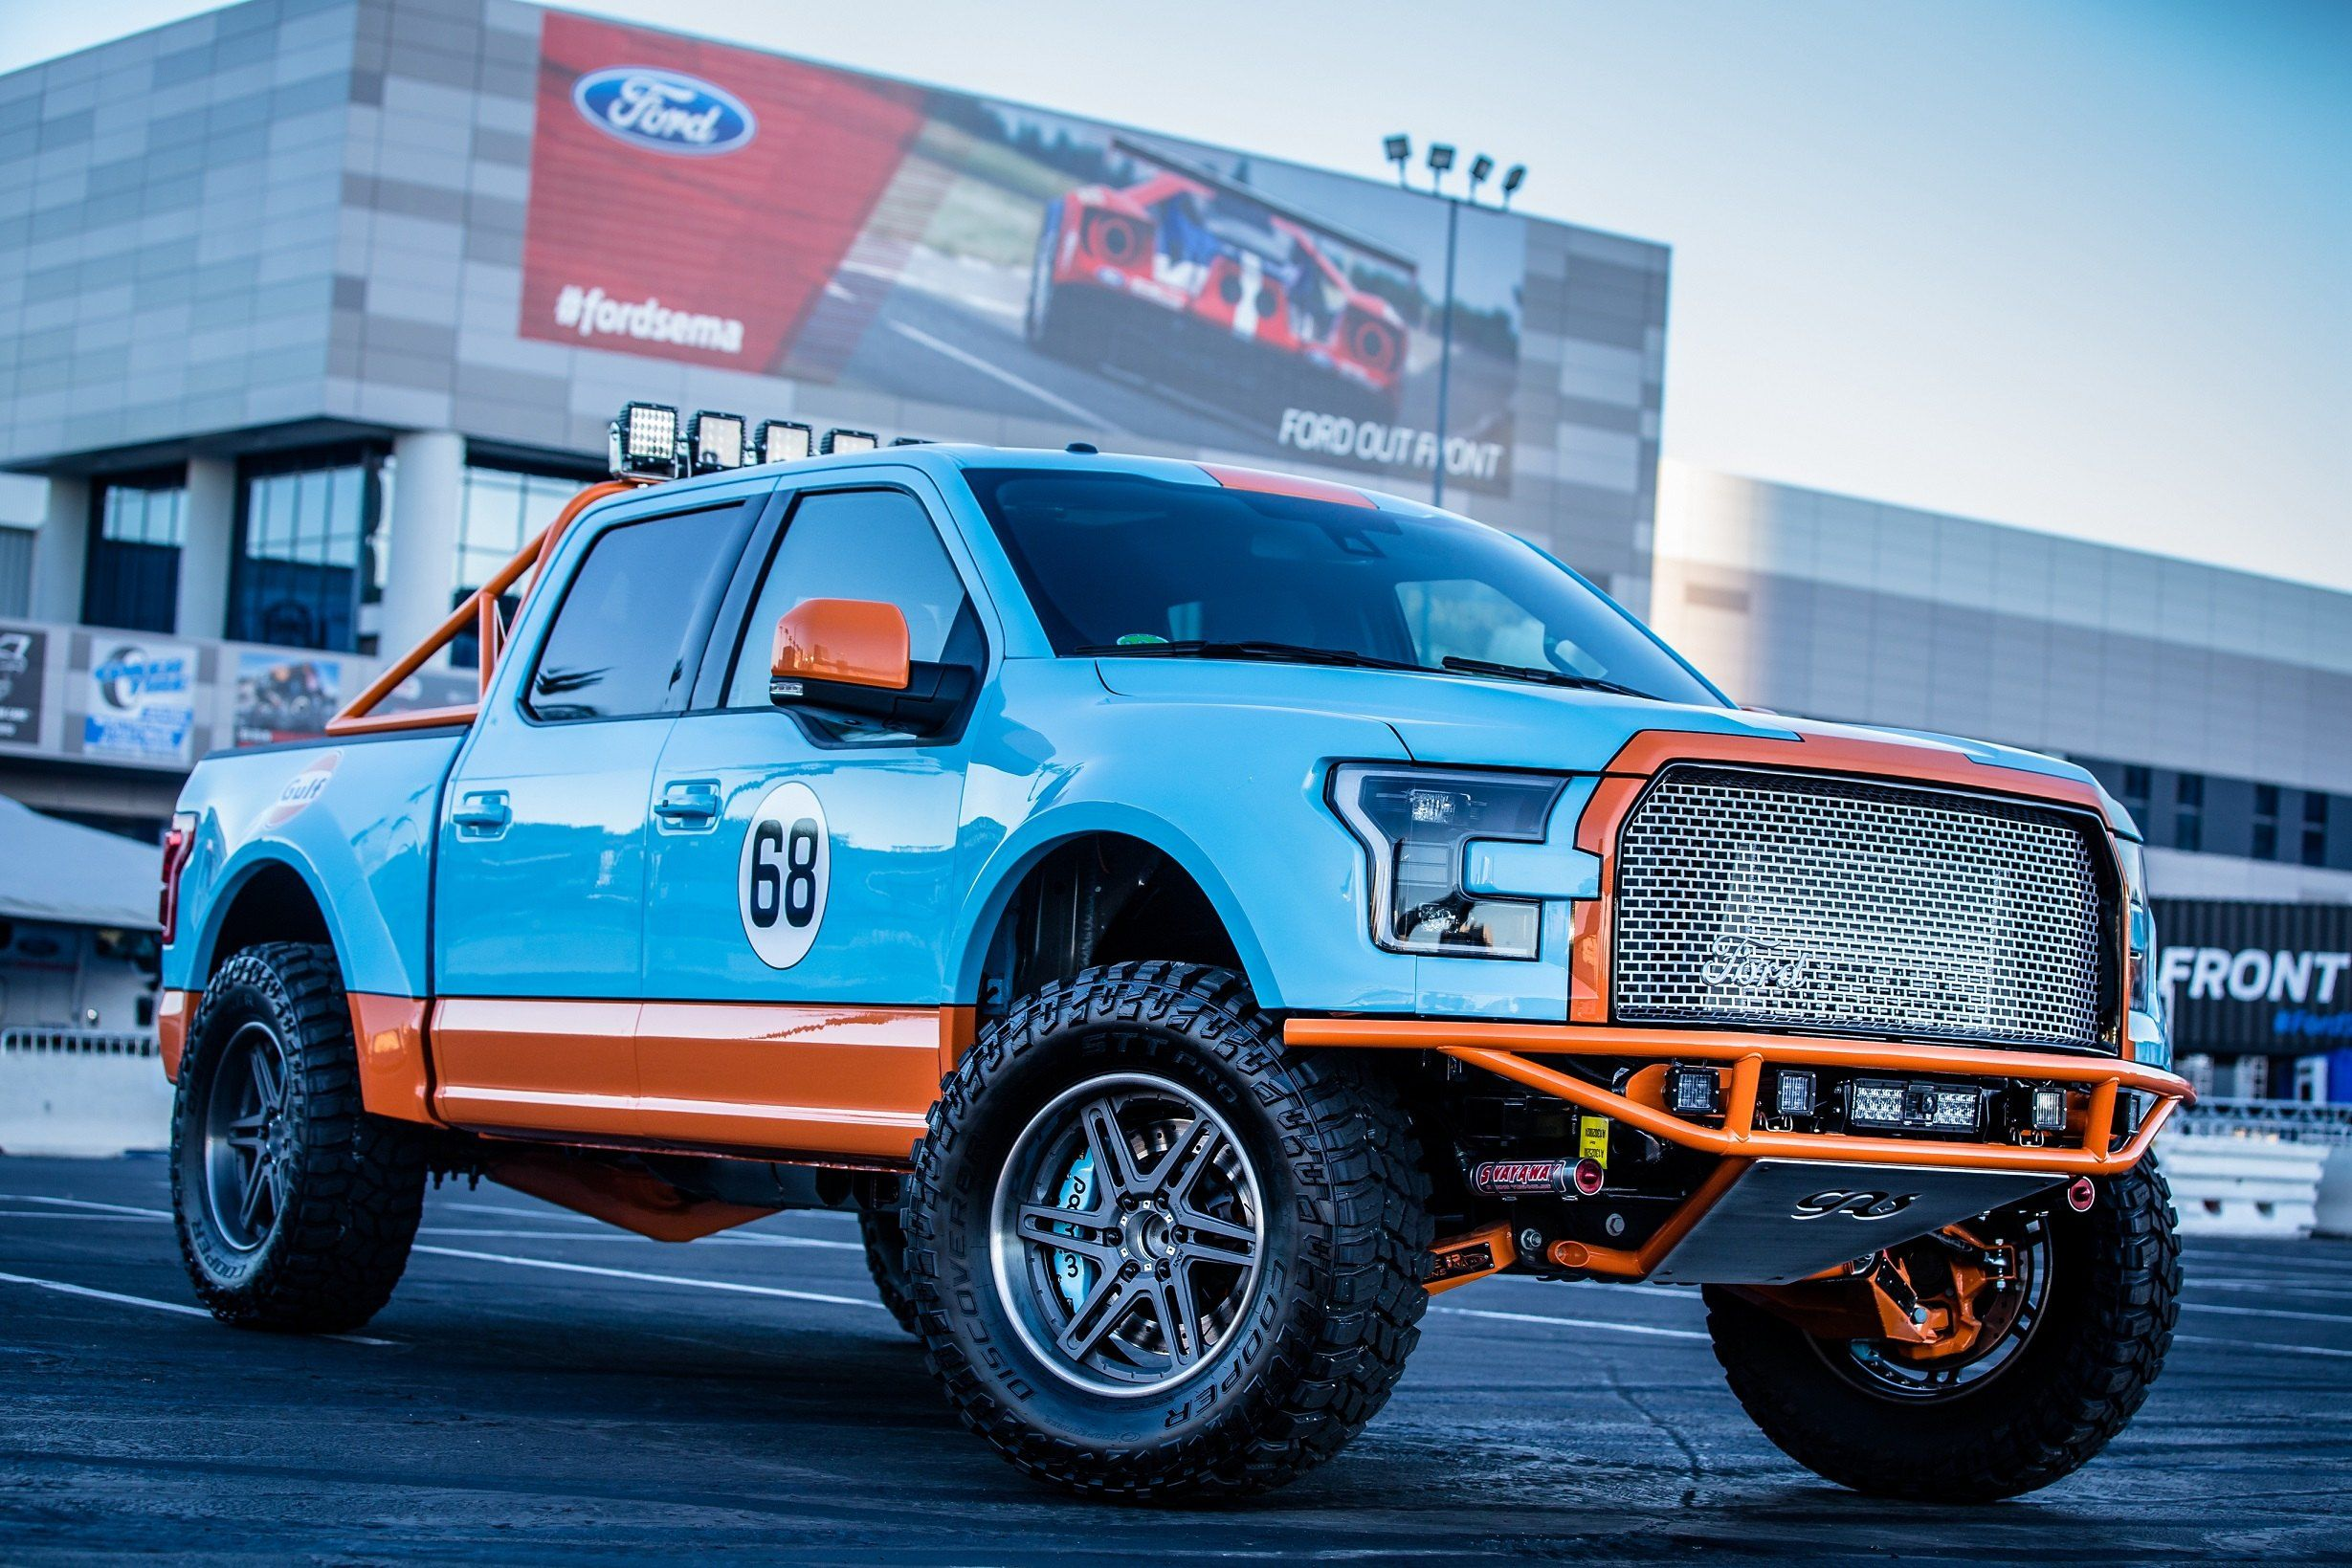 Gulf Racing Livery On Ford F150 Truck With Adv 1 Wheels With